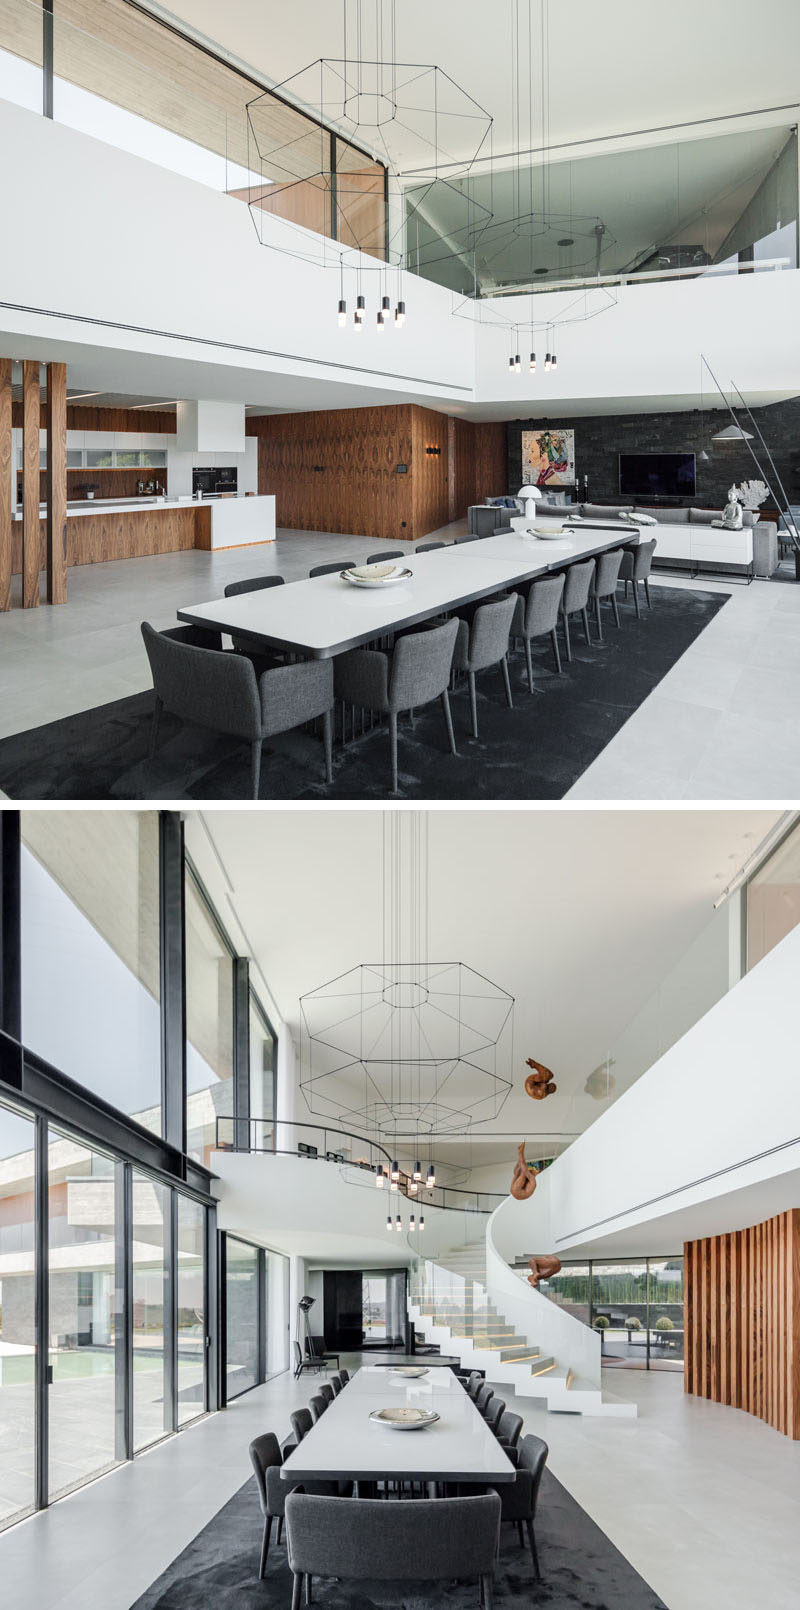 Central to the interior of this modern house is the main dining area, that takes advantage of the double-height ceiling, by having two minimalist geometric chandeliers hanging above a large dining table. #LargeDiningTable #DoubleHeightCeiling #InteriorDesign